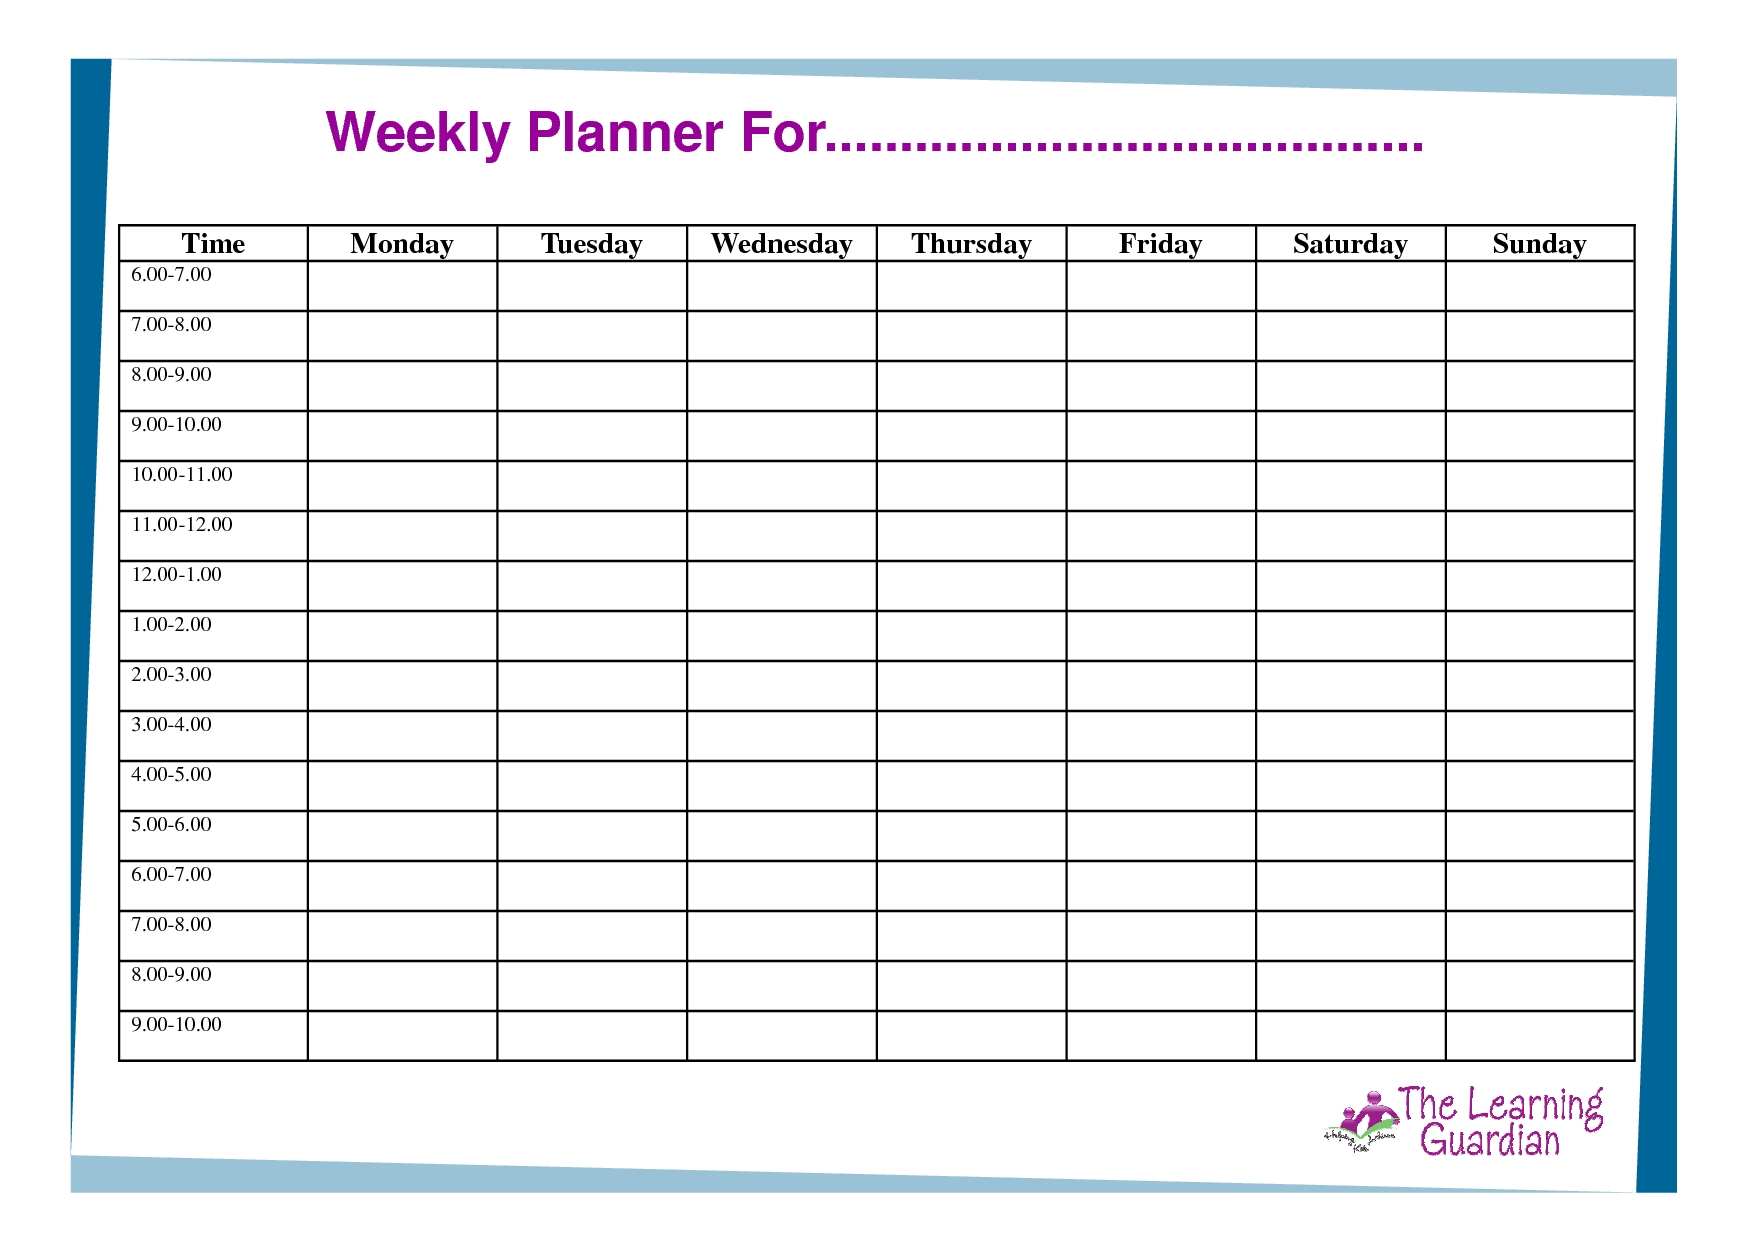 Free Printable Weekly Calendar Templates | Weekly Planner-Monday Wednesday Friday Schedule Template